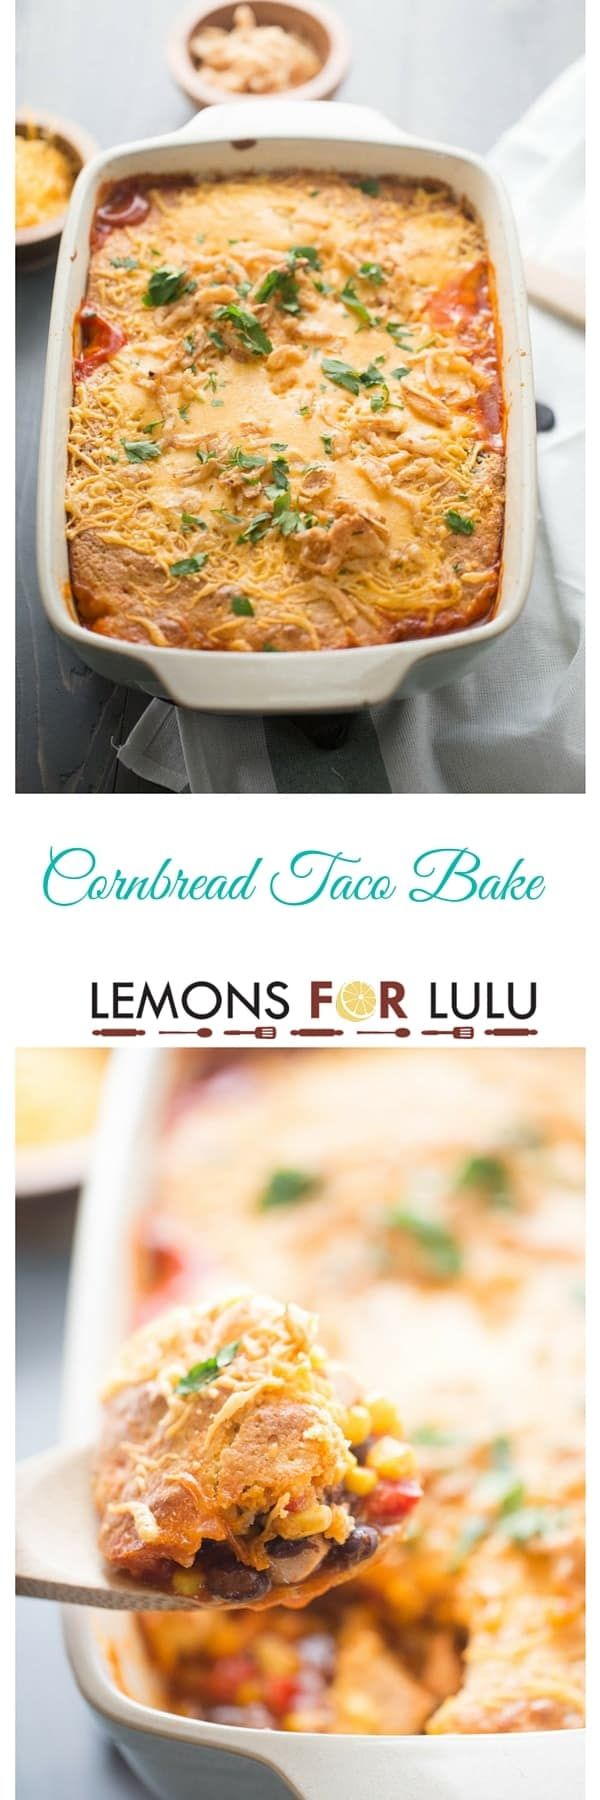 A simple cornbread taco bake that is a quick meal for any night of the week! This family friendly recipe starts uses pantry staples and rotisserie chicken which makes this meal come together in a flash! lemosforlulu.com